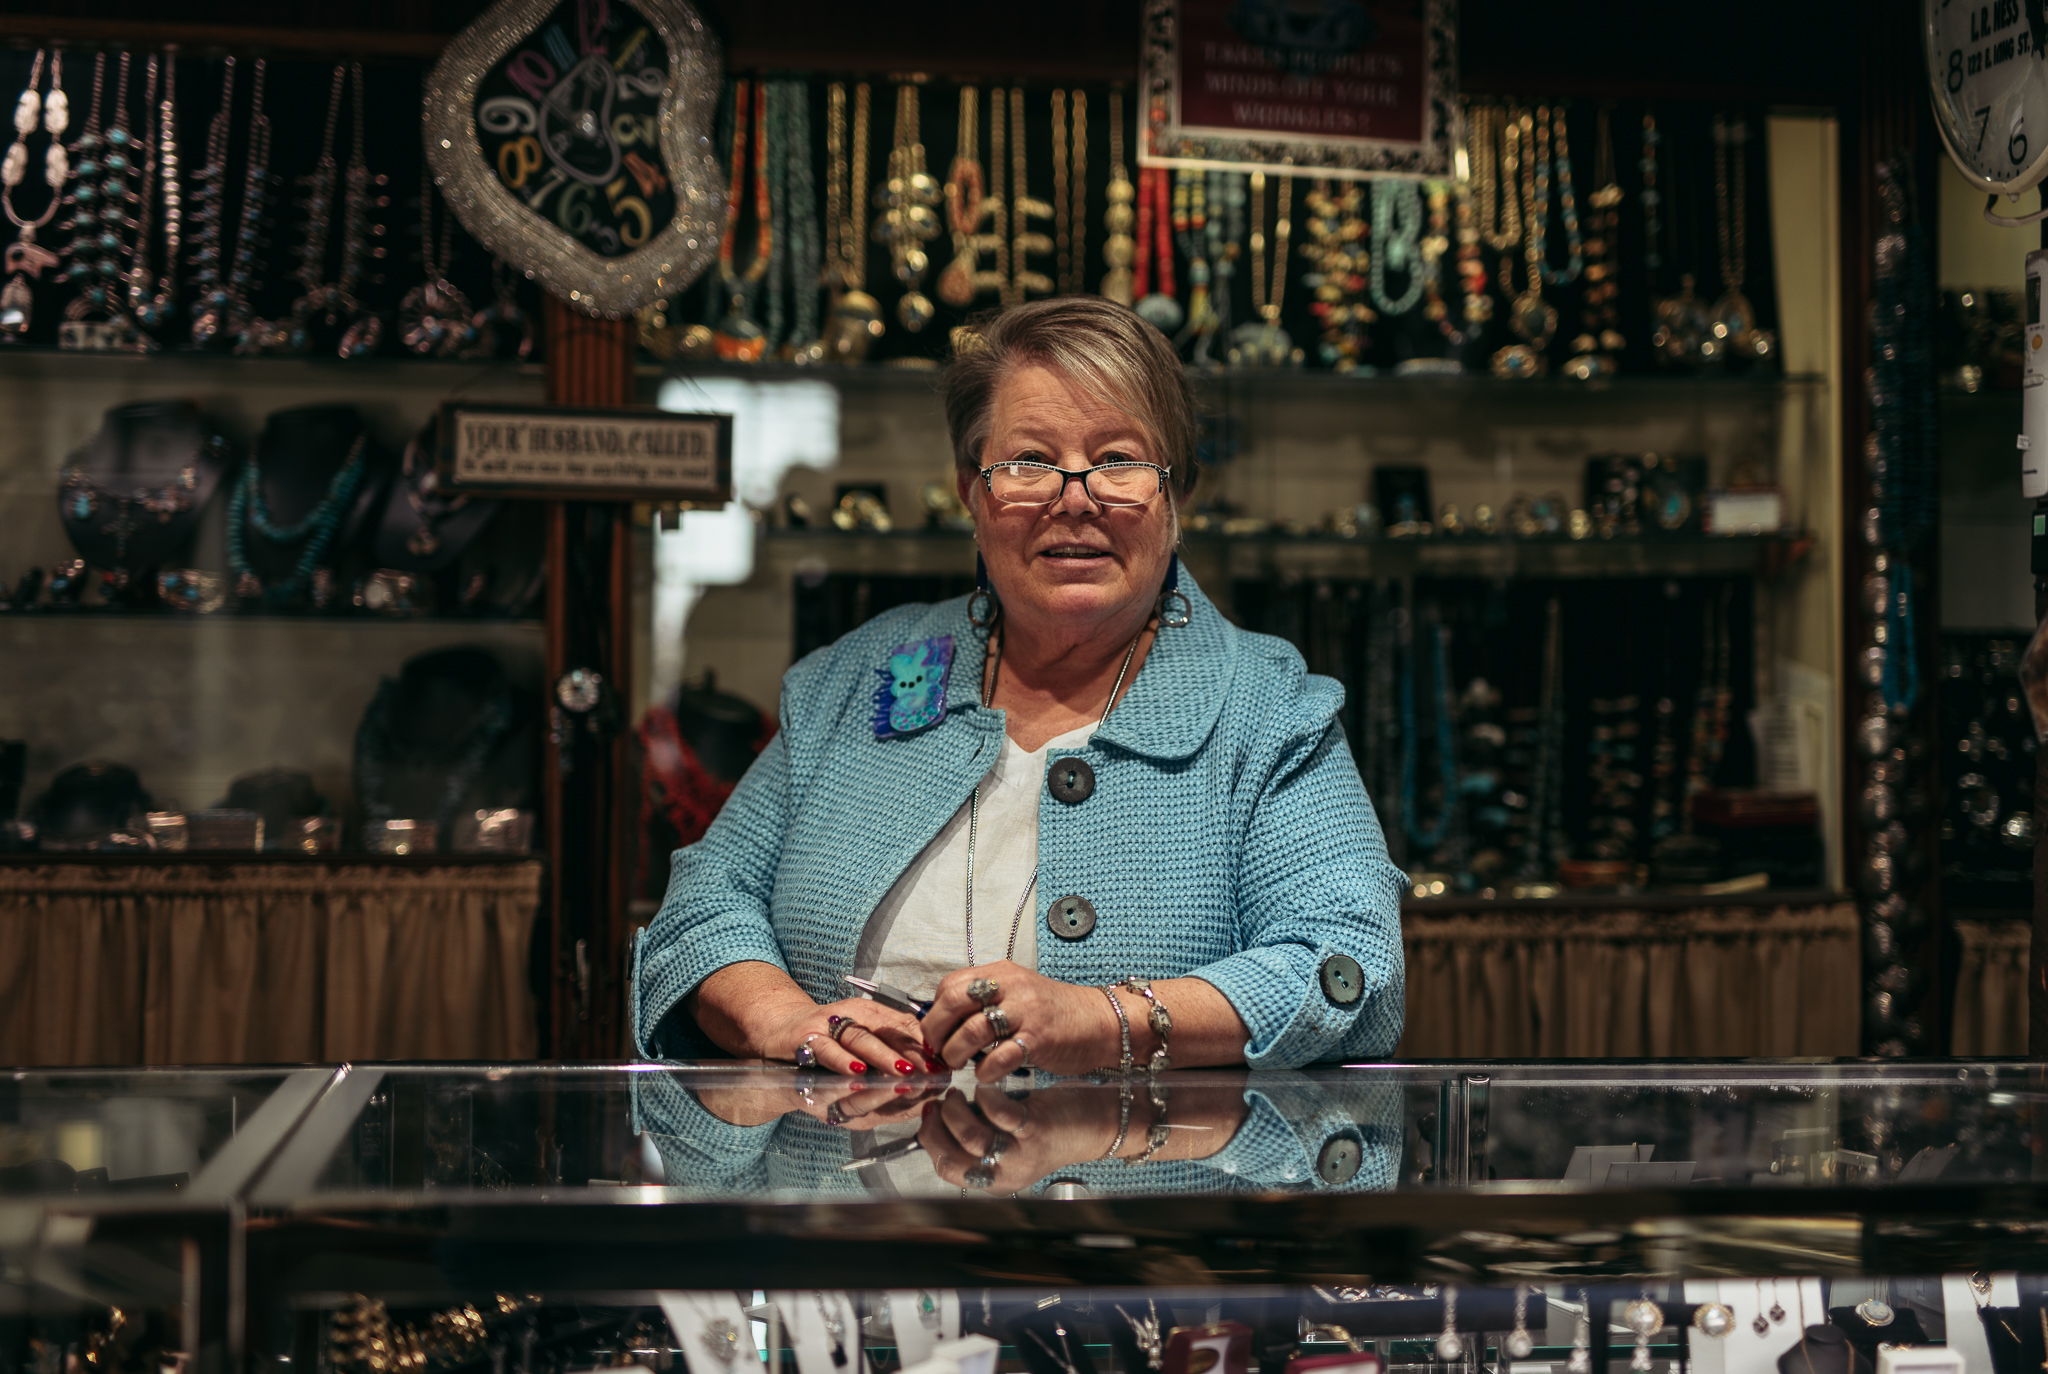 Pat Elicker - Owner of the barn